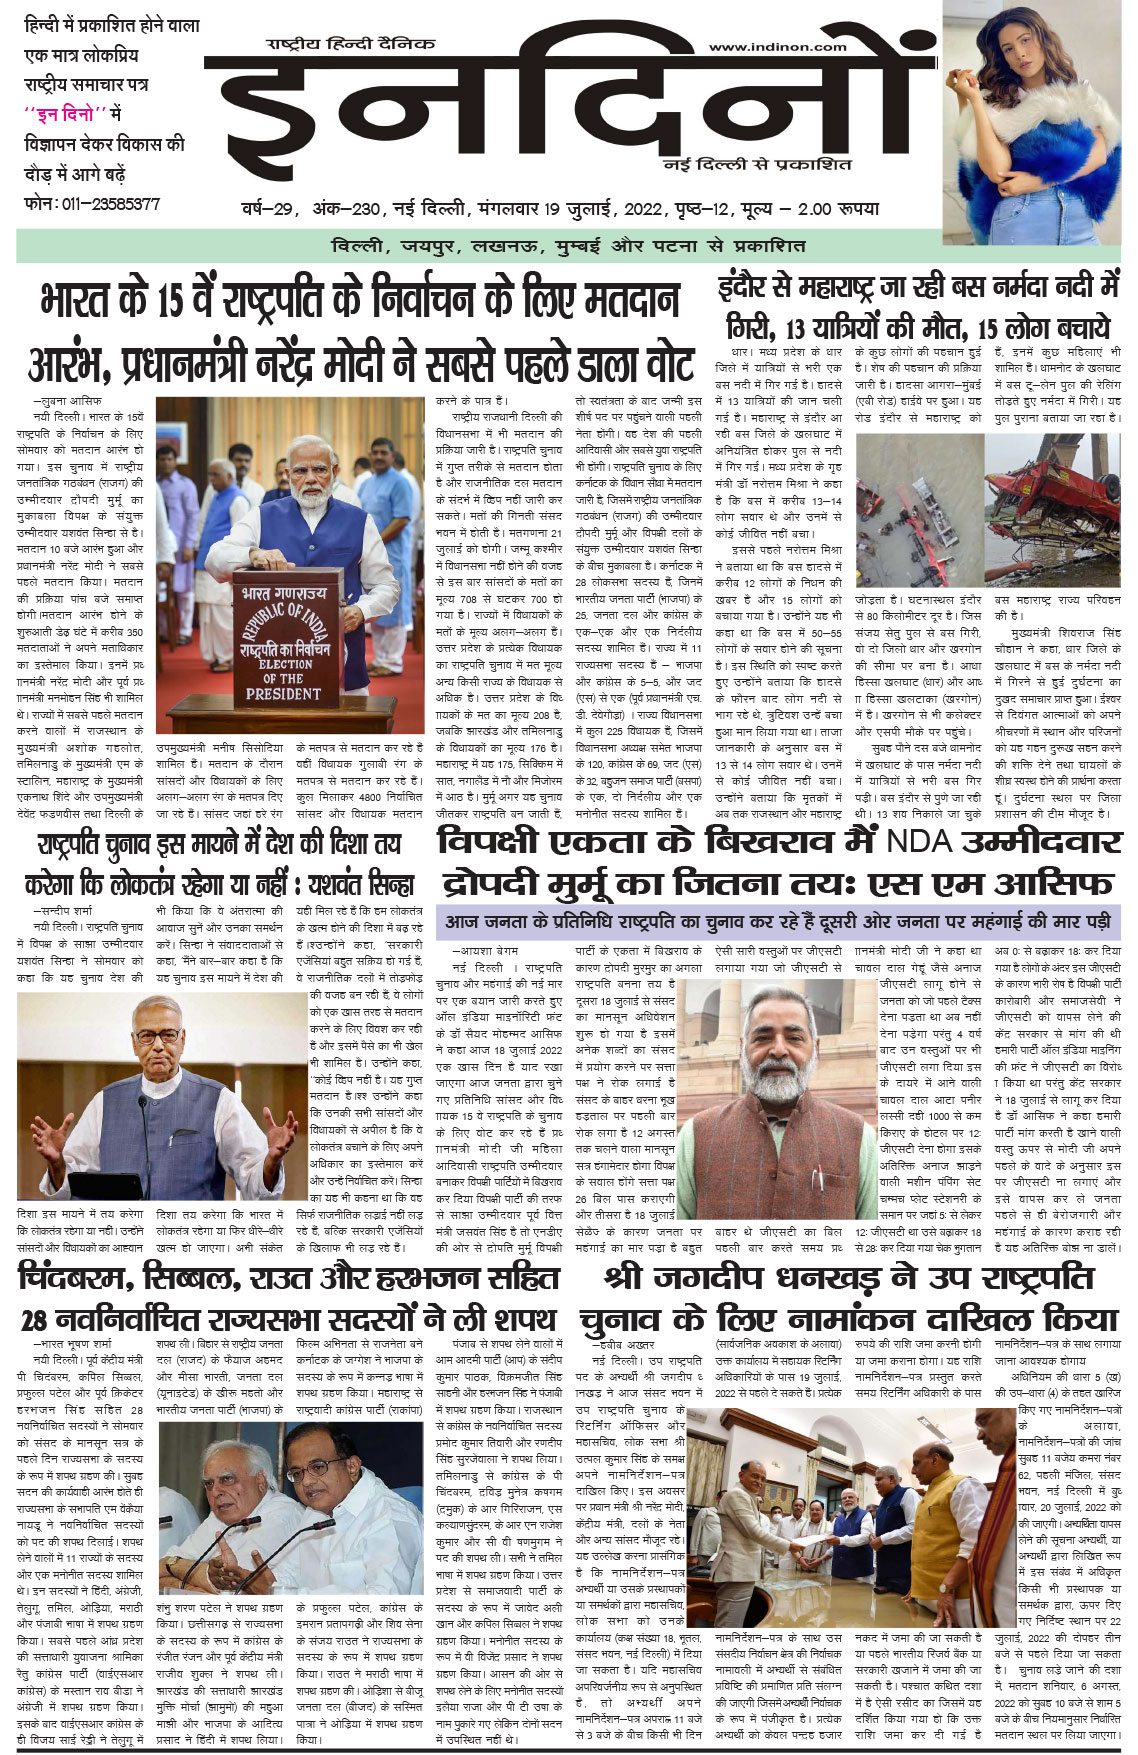 indian english news papers online Indian newspapers for information on local issues, politics, events, celebrations, people and business looking for accommodation, shopping, bargains and weather then this is the place to start.